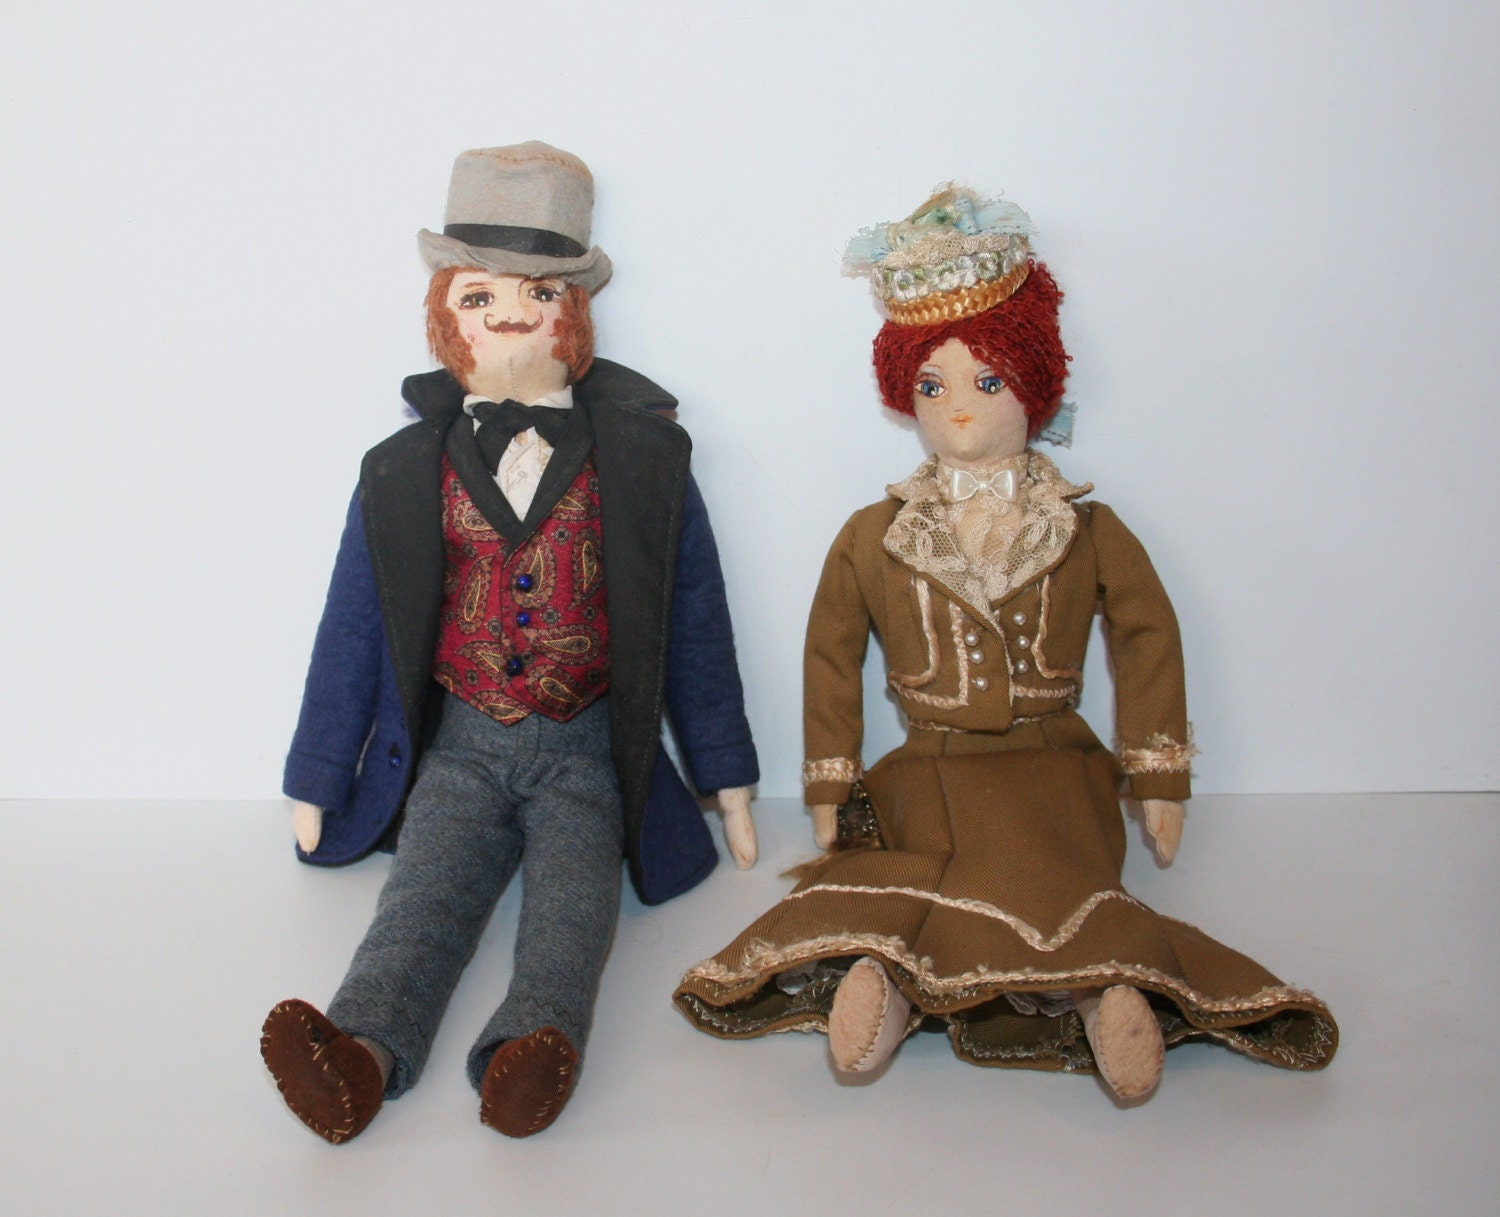 Two Unusual Old Dolls In Victorian Dress  MEMsArtShop.